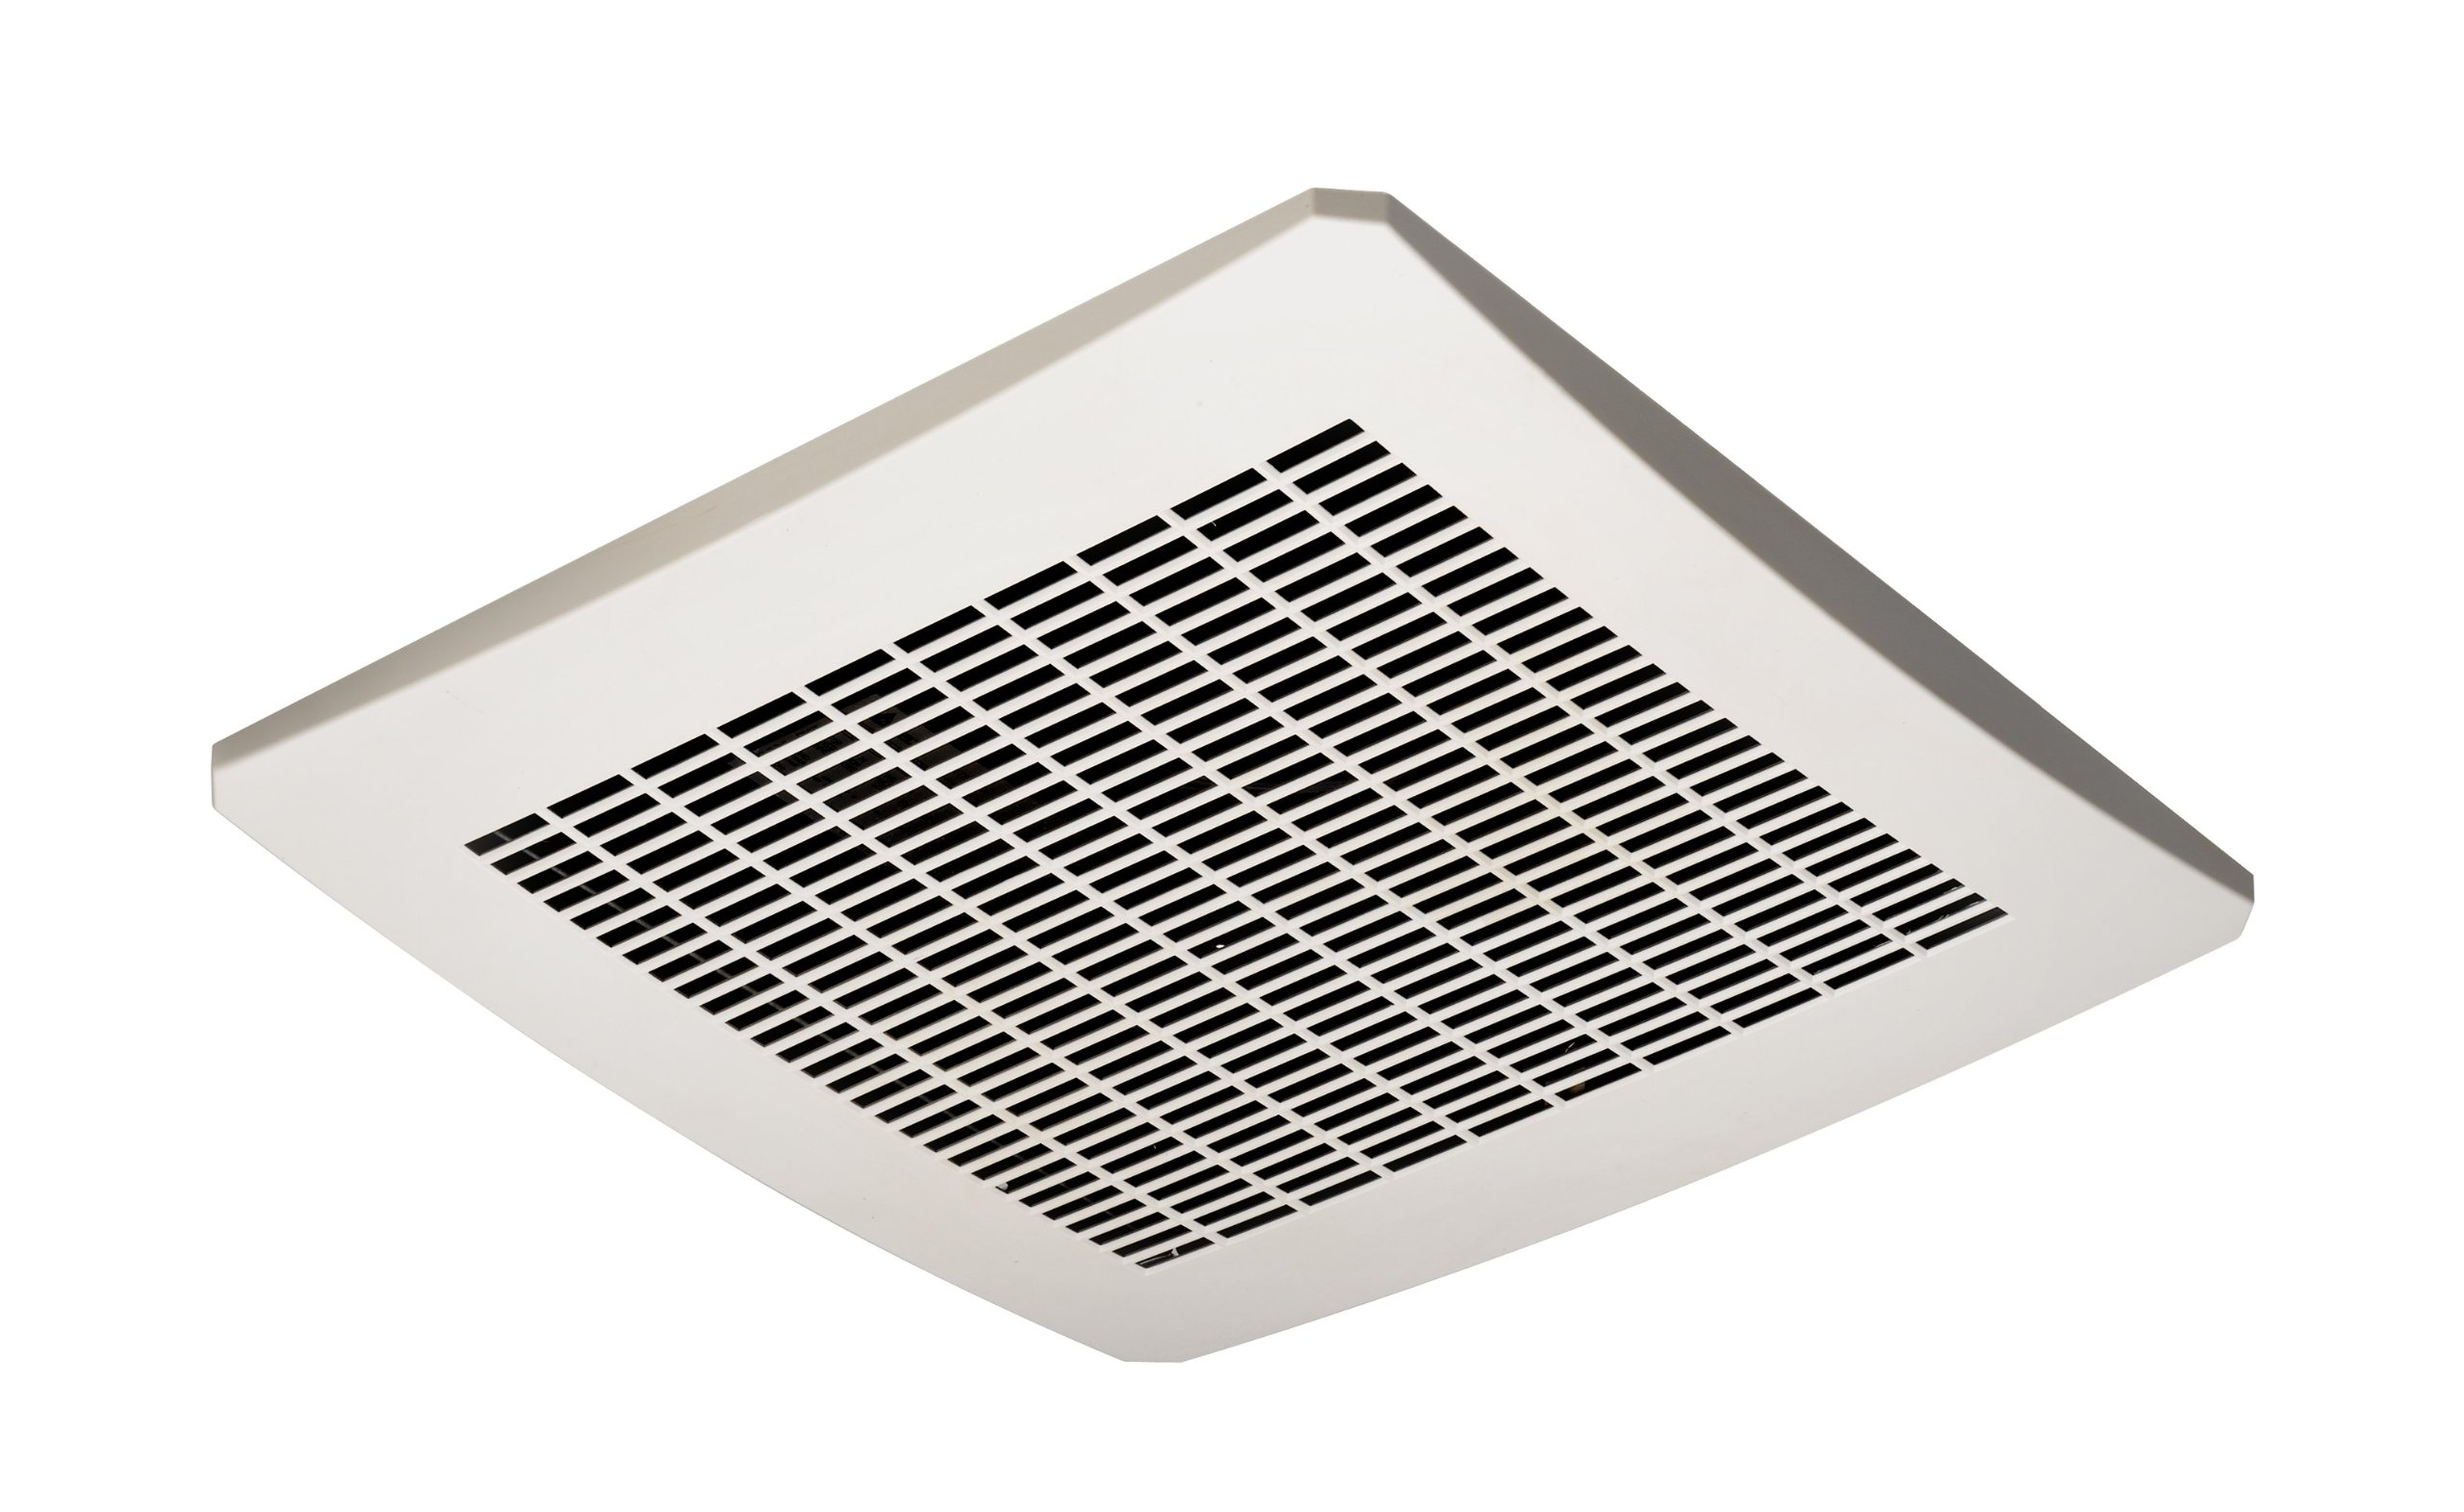 Delta Electronics VFB25ACH Breez 80 CFM Humidity Sensor Exhaust Fan, Less Than 0.3 Sone by Delta Products Corporation (Image #2)